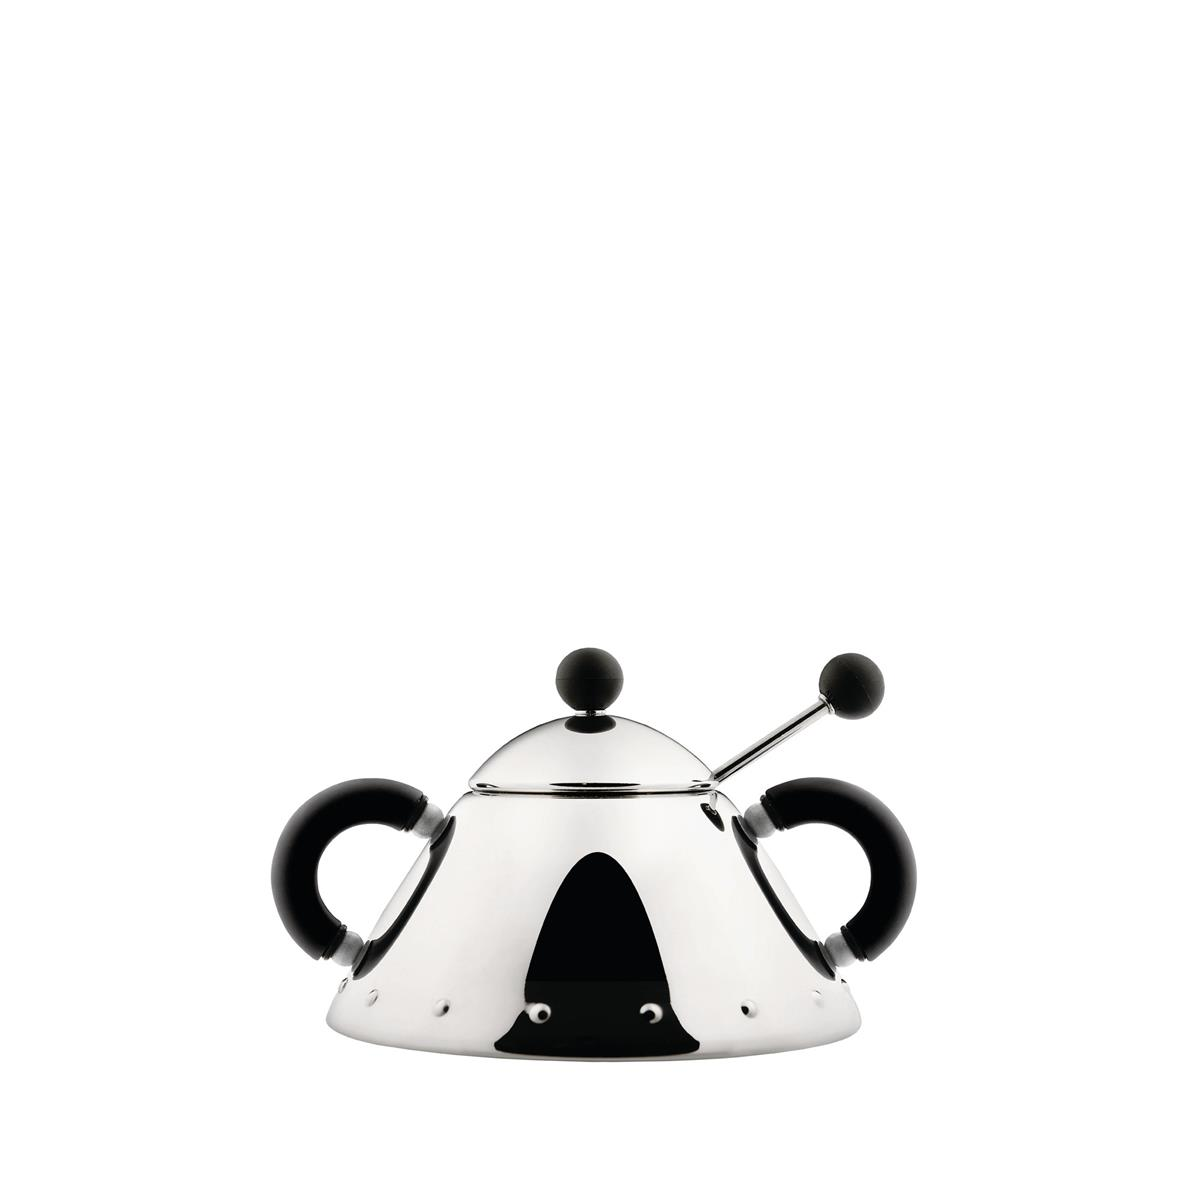 Alessi-Sugar bowl with spoon in 18/10 stainless steel and PA, black